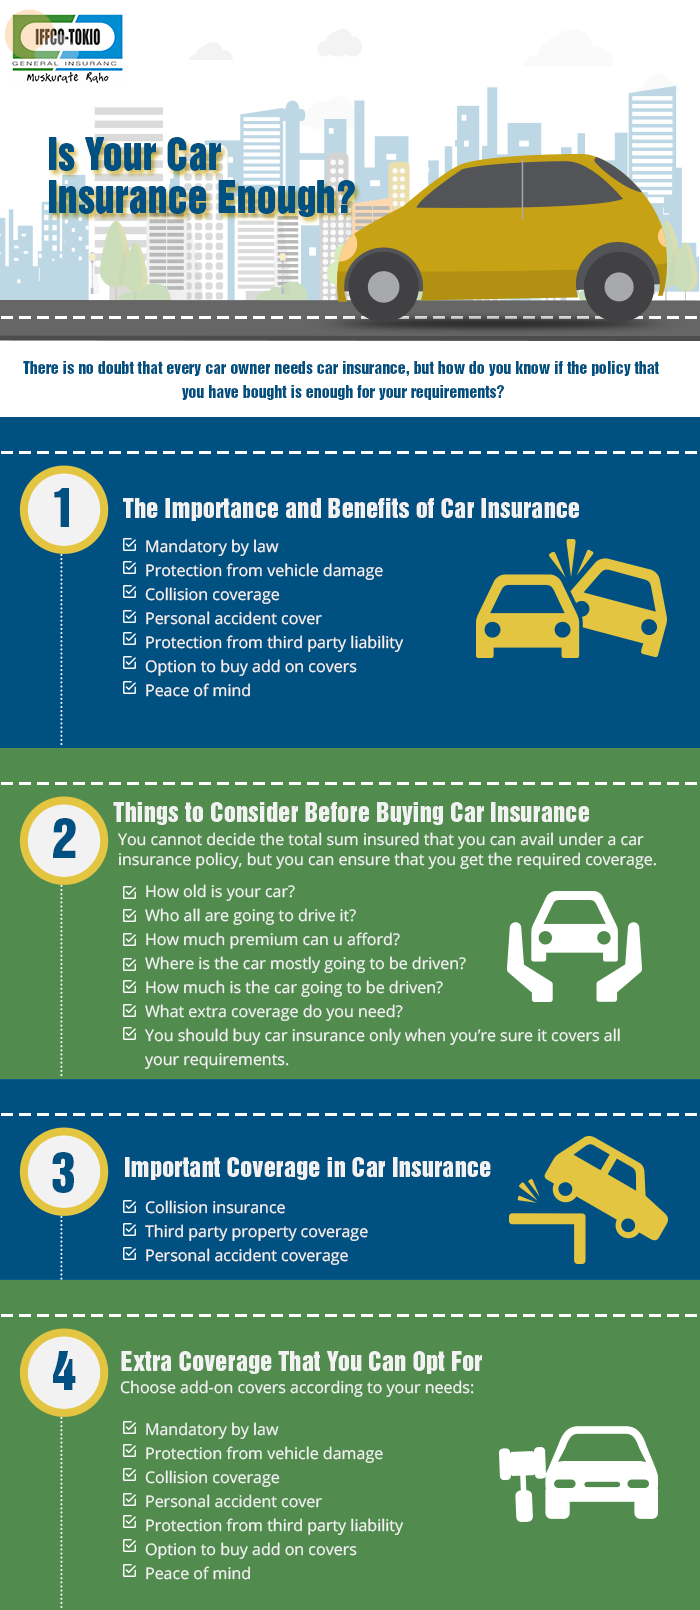 There Is No Doubt That Every Car Owner Needs Car Insurance But